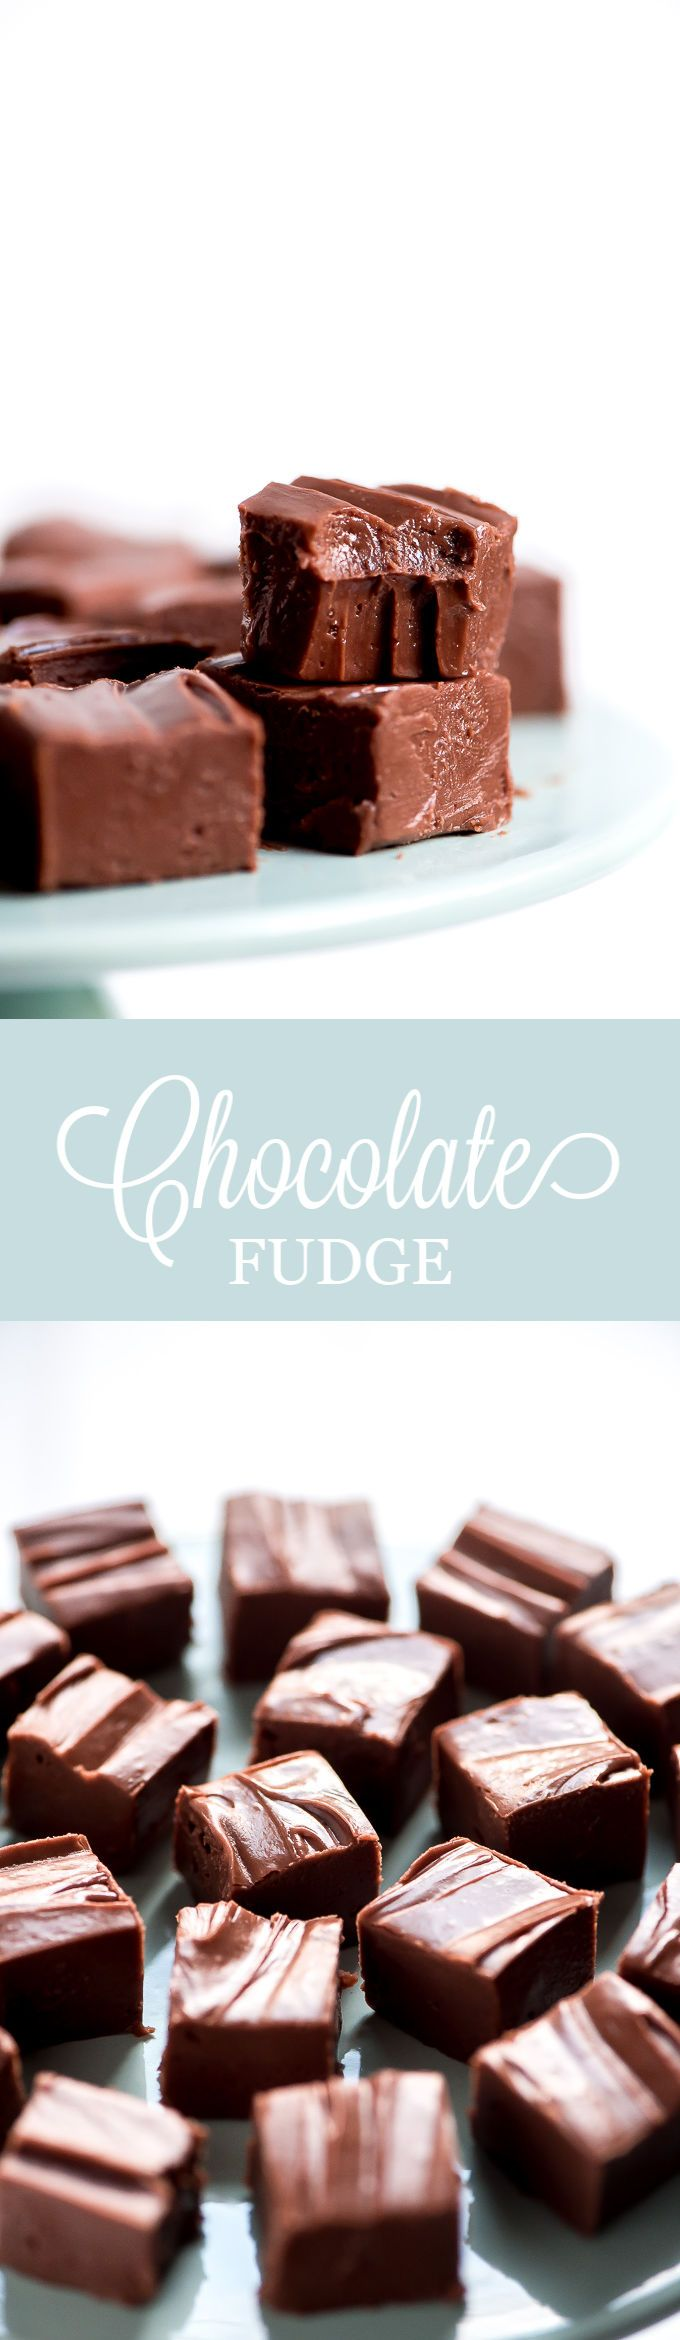 This Easy Chocolate Fudge is so creamy and smooth. Slice it into little squares and package it up for a deliciously sweet holiday gift. #chocolate #fudge #christmastreats #christmasgifts #valentinesday   GarnishandGlaze.com